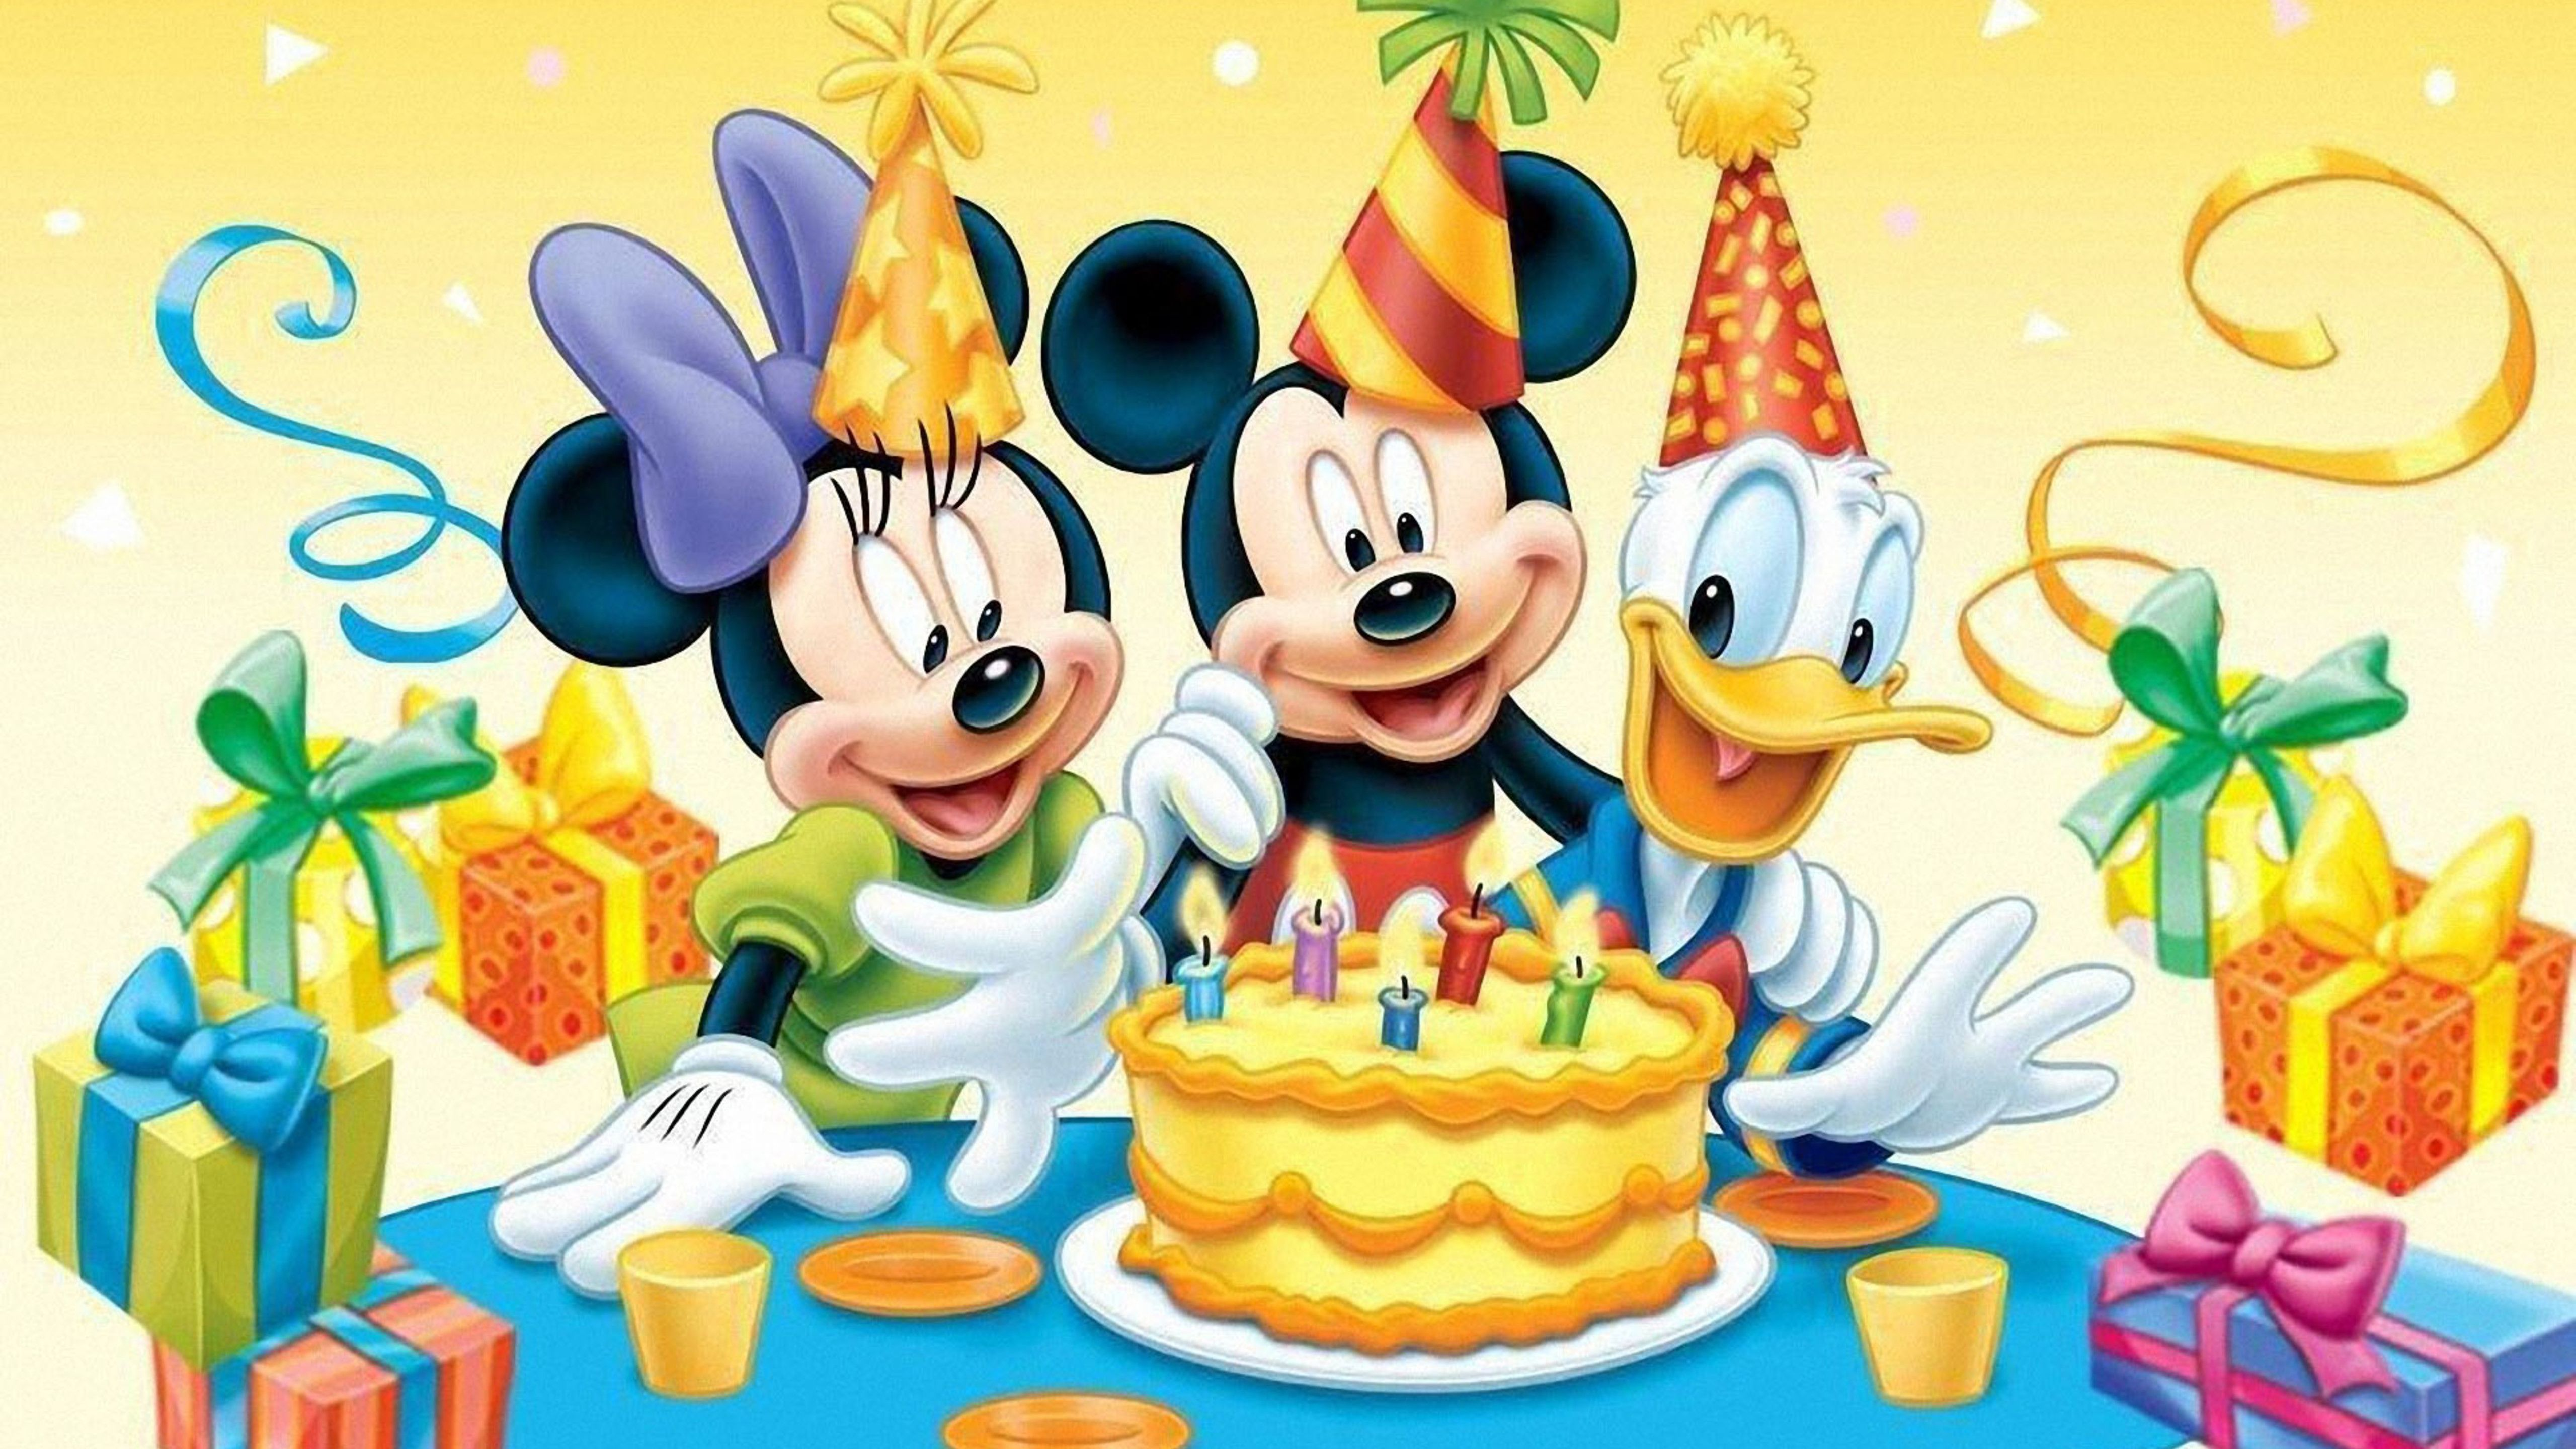 53 Wallpaper Birthday Animated Hd With Images Cute Birthday